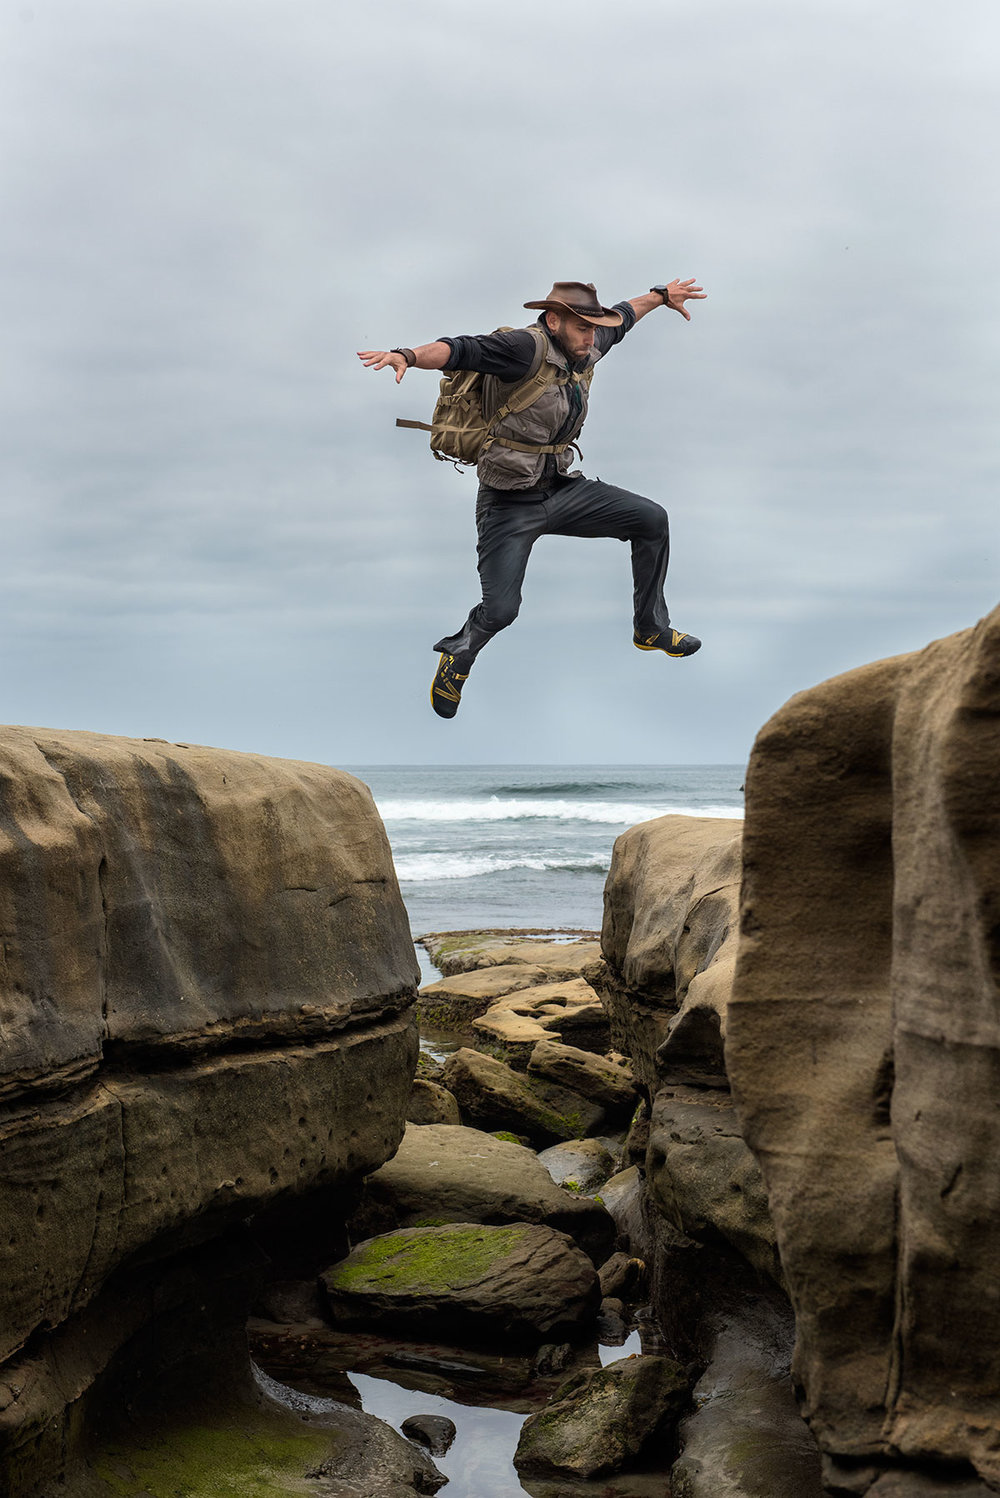 austin-trigg-brave-wilderness-la-jolla-california-jump-over-reef.jpg